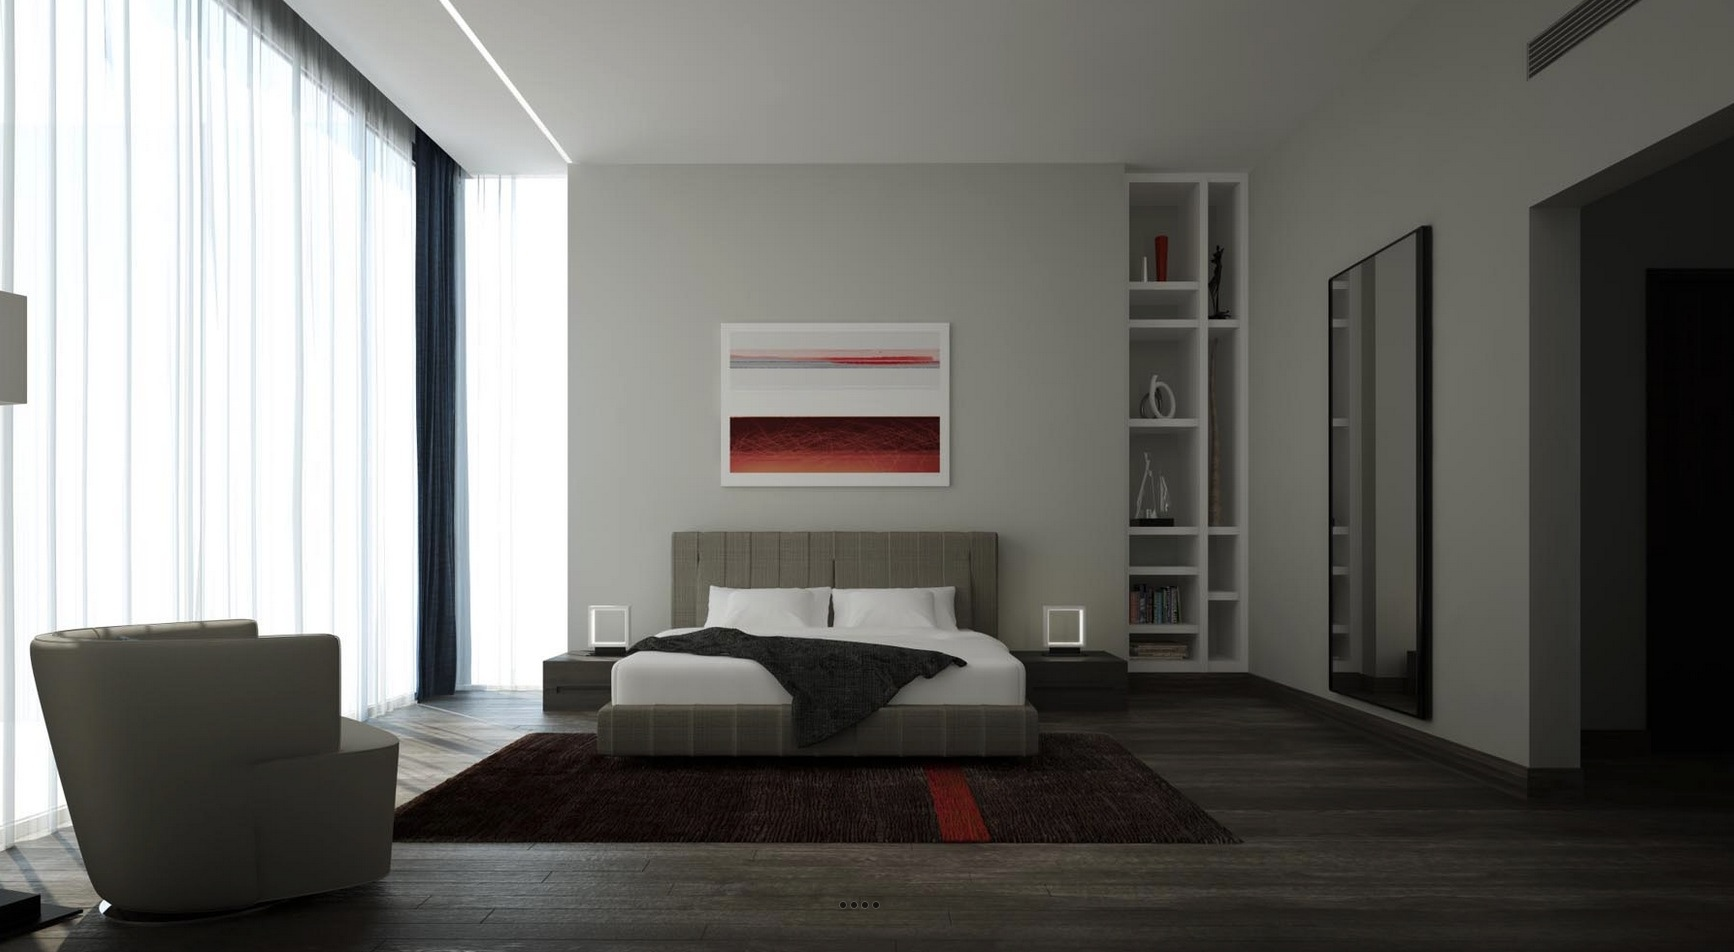 21 Cool Bedrooms for Clean and Simple Design Inspiration on Cool Bedroom Ideas For Small Rooms  id=48972